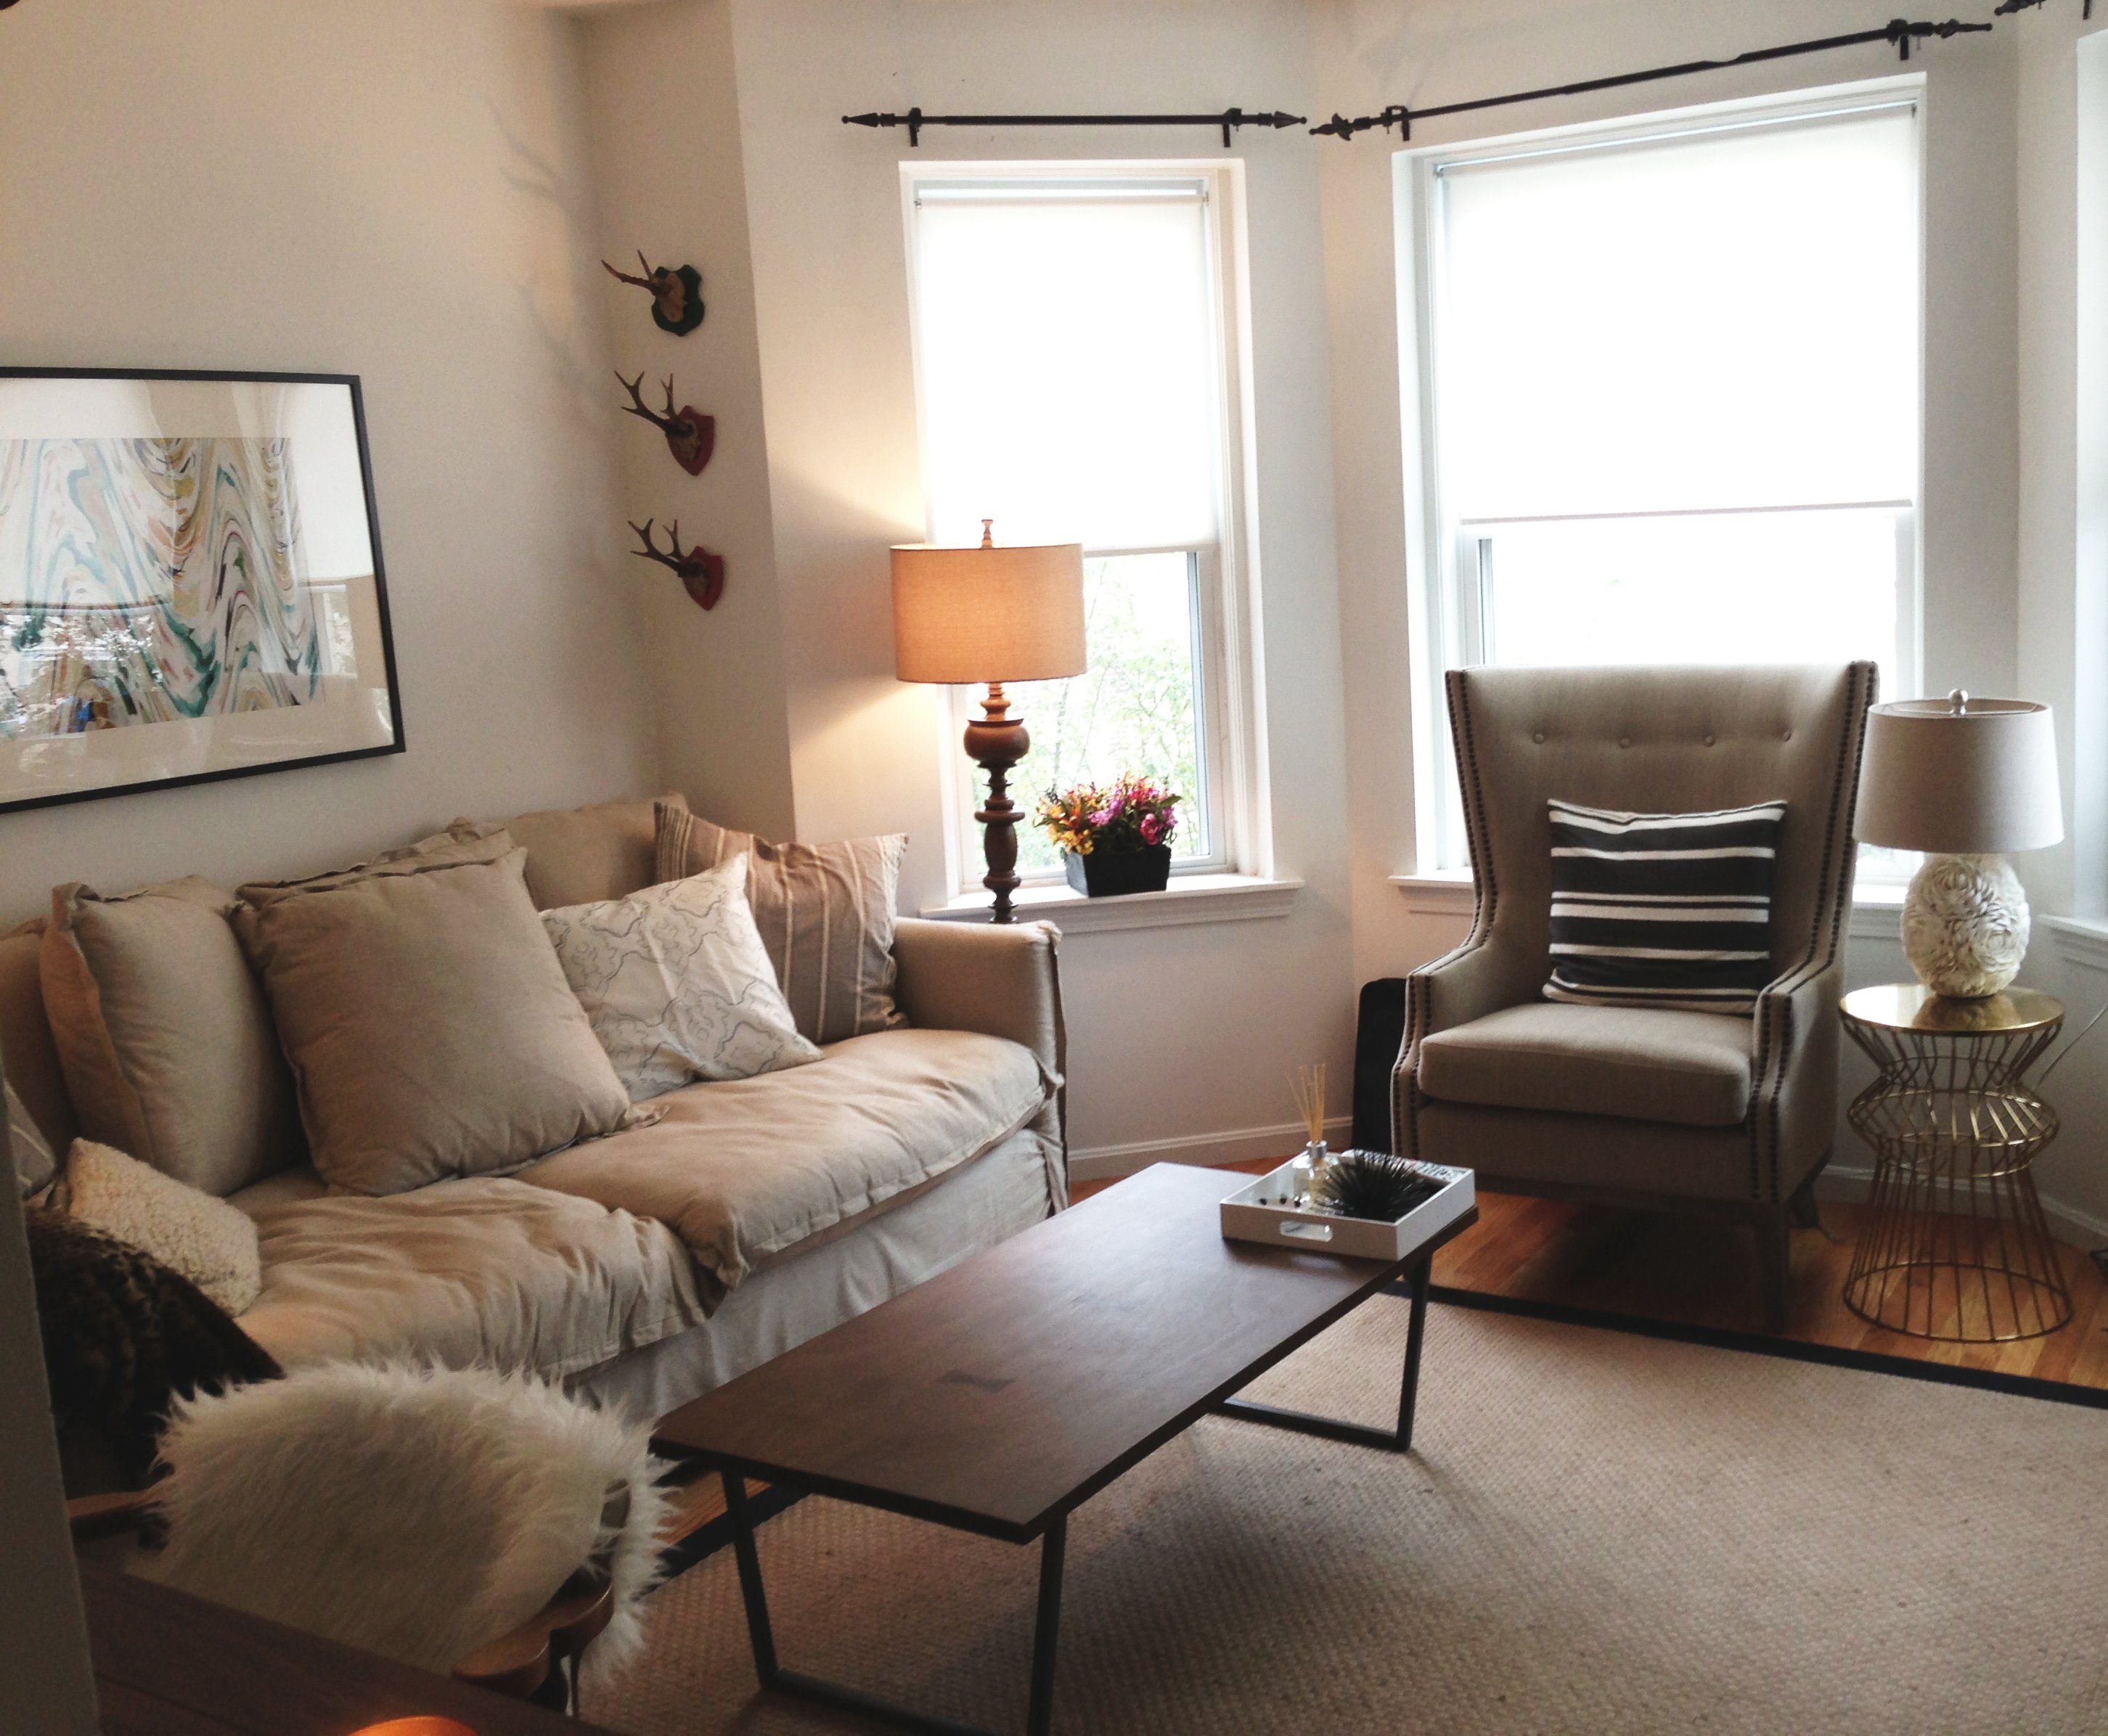 Paint Colors That Match This Apartment Therapy Photo SW 6006 Black Bean 7757